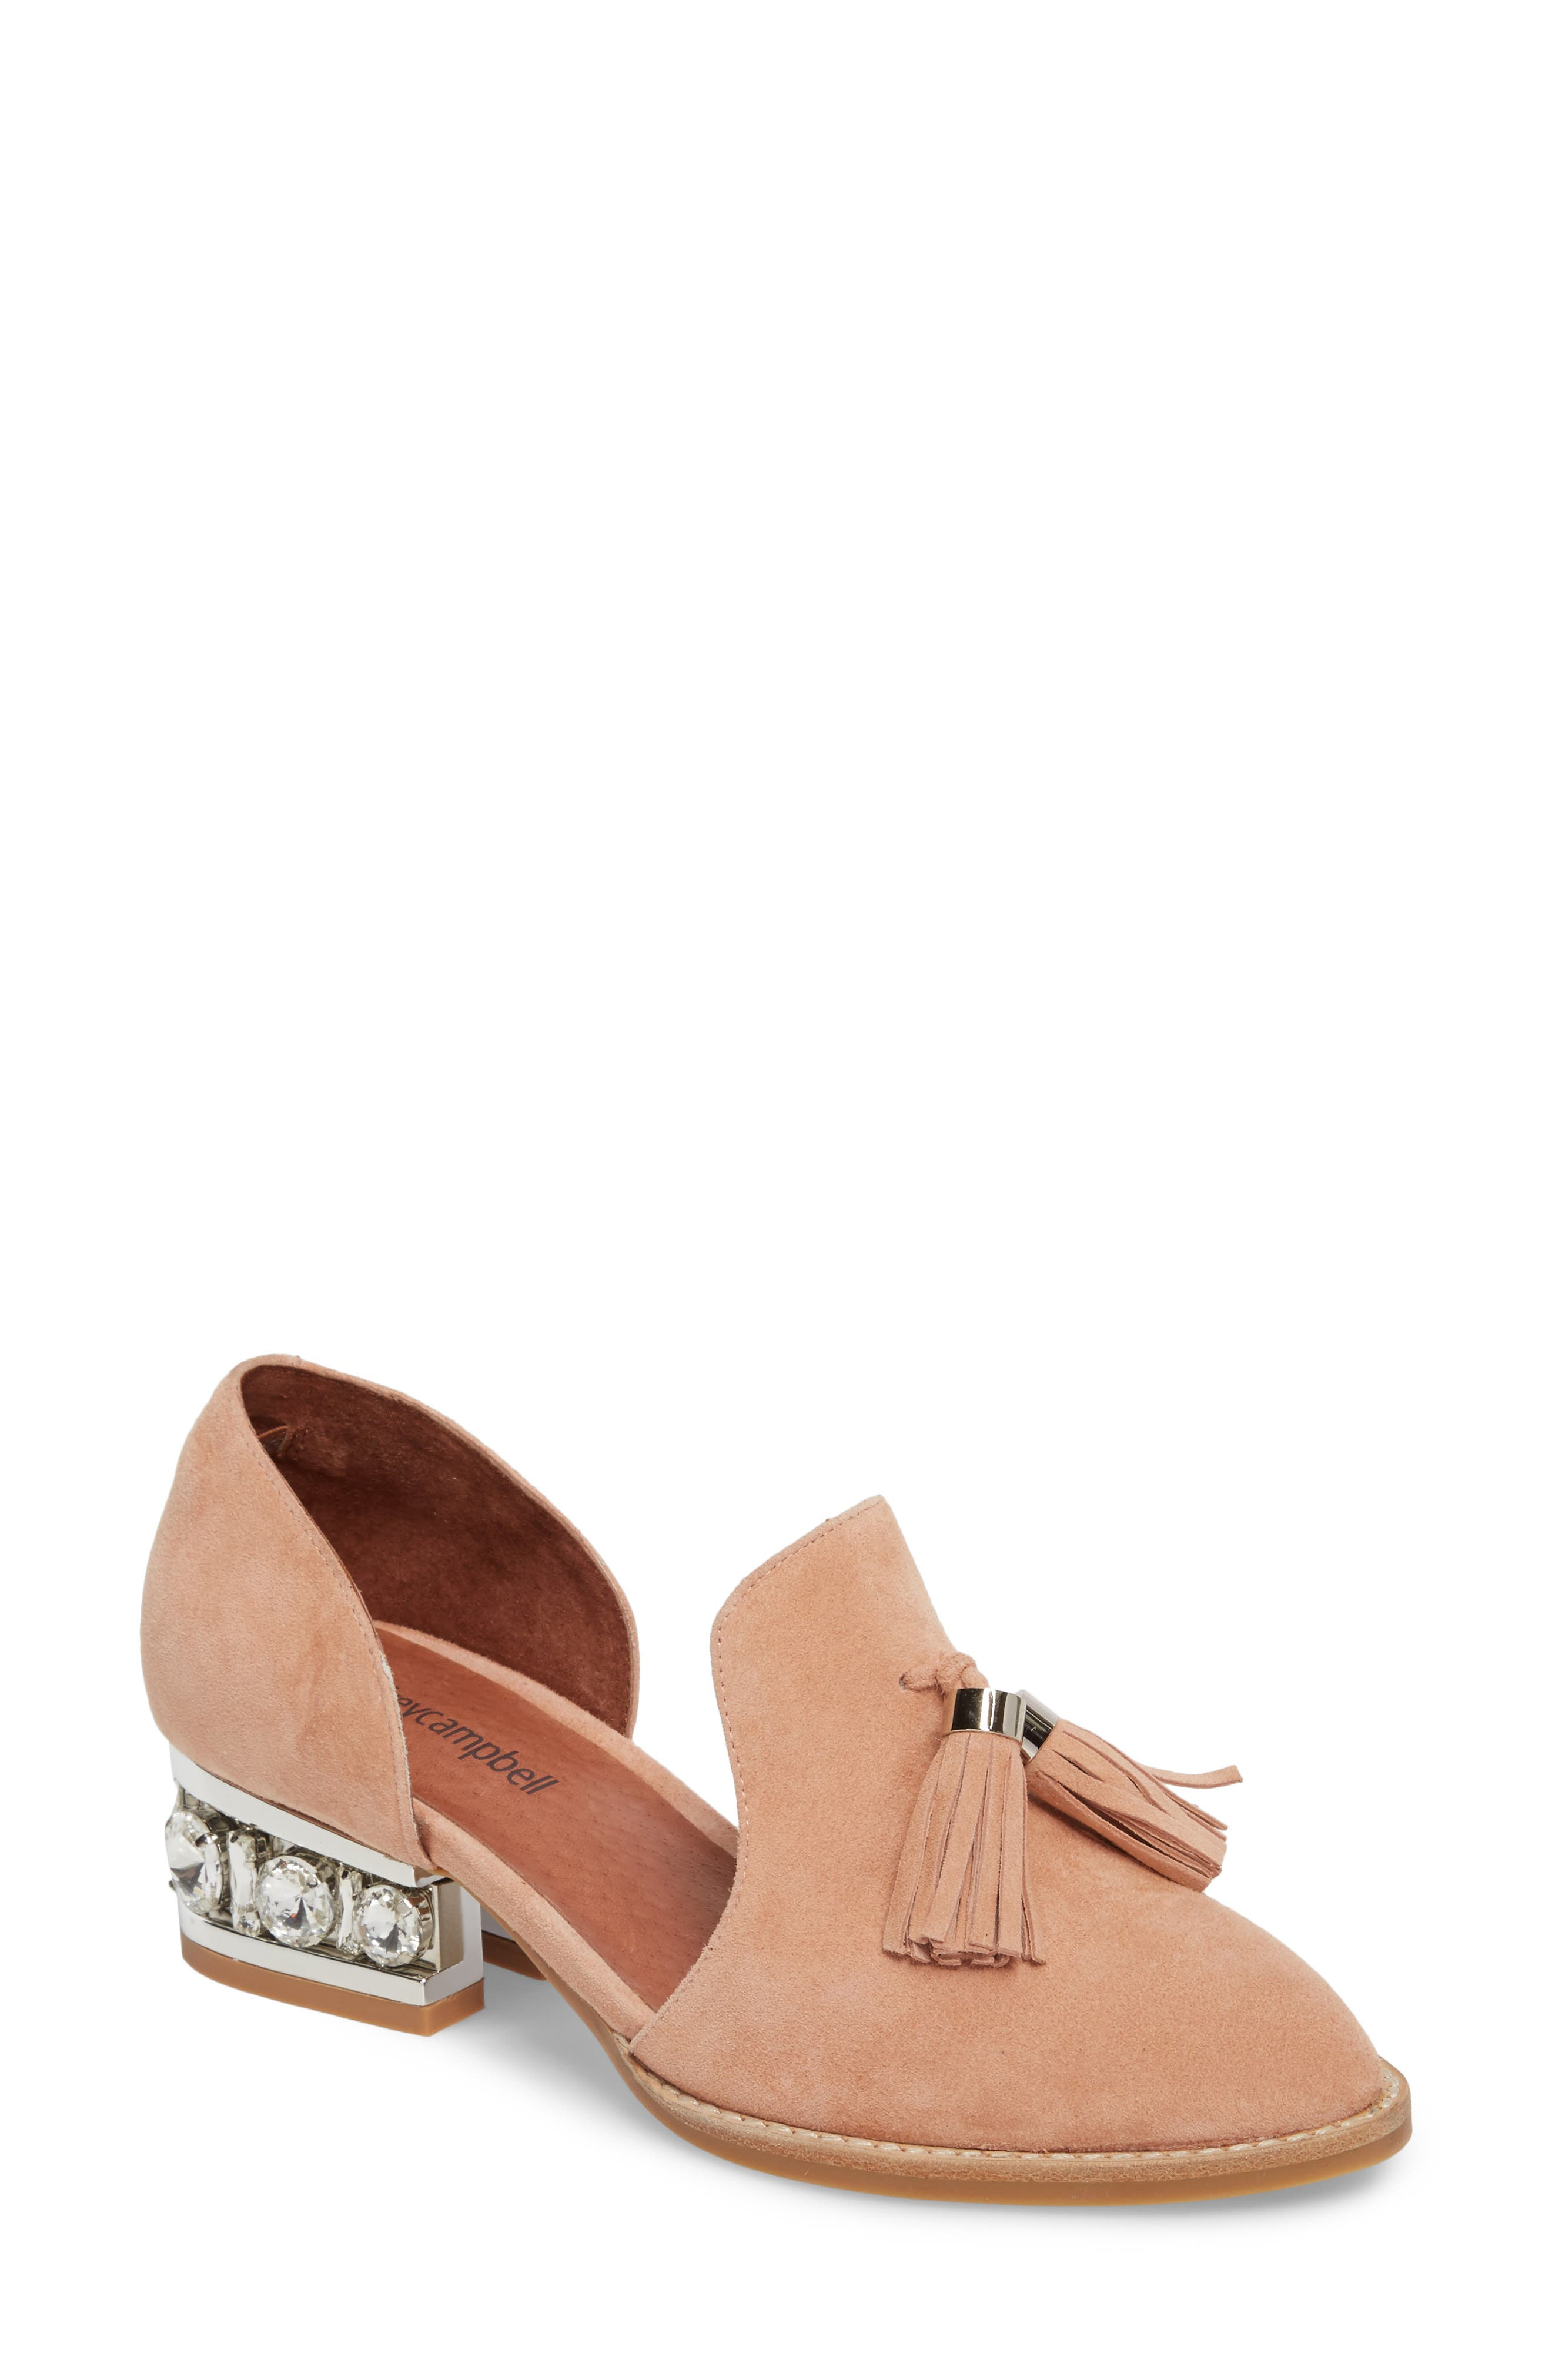 Main Image - Jeffrey Campbell Civil Studded Loafer (Women)